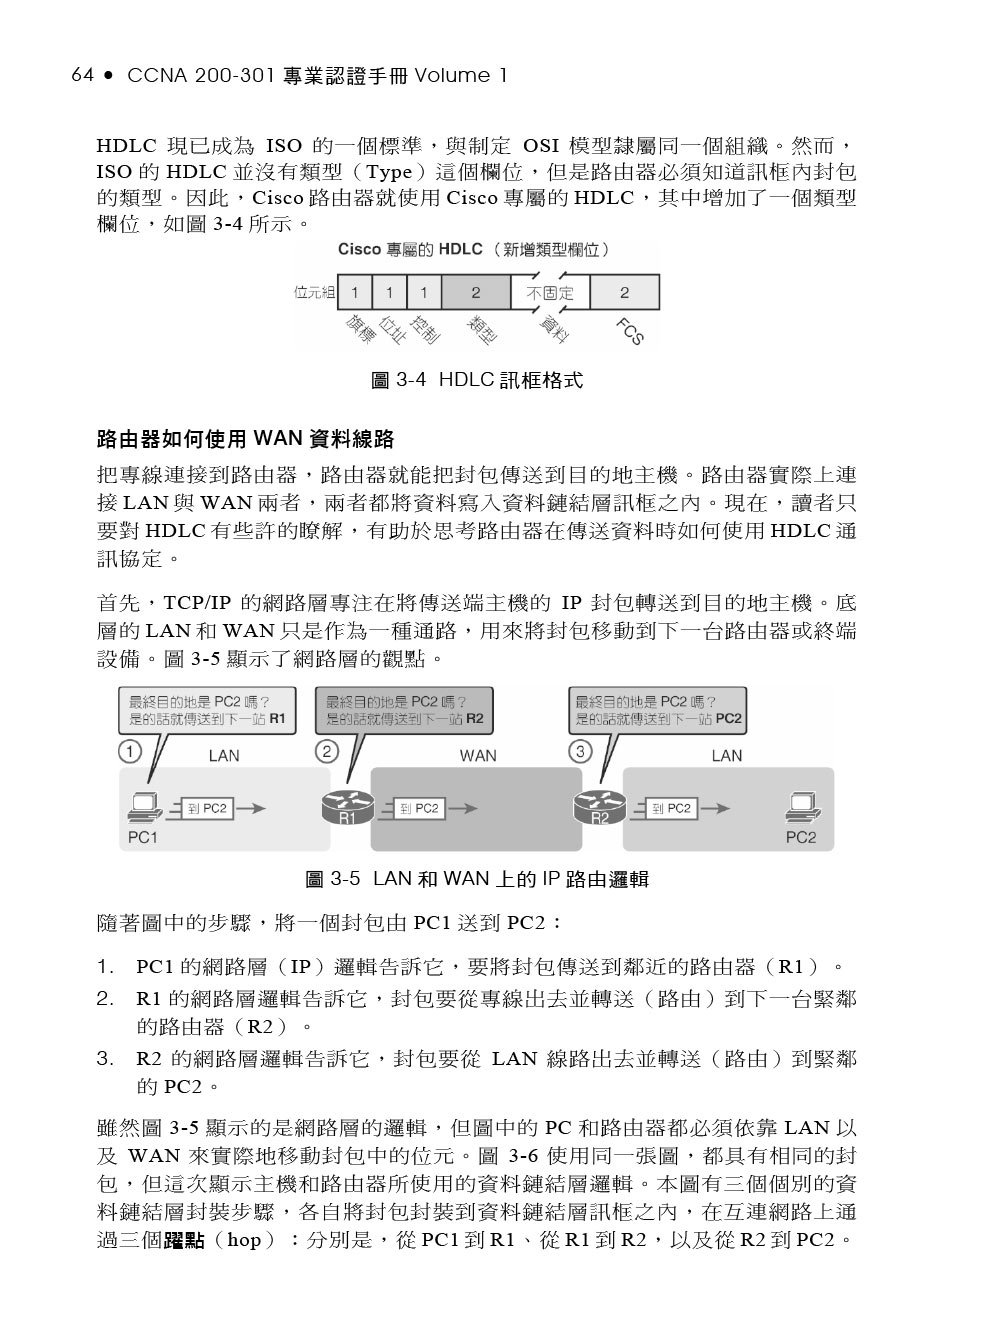 CCNA 200-301 專業認證手冊, Volume 1 (CCNA 200-301 Official Cert Guide, Volume 1)-preview-7